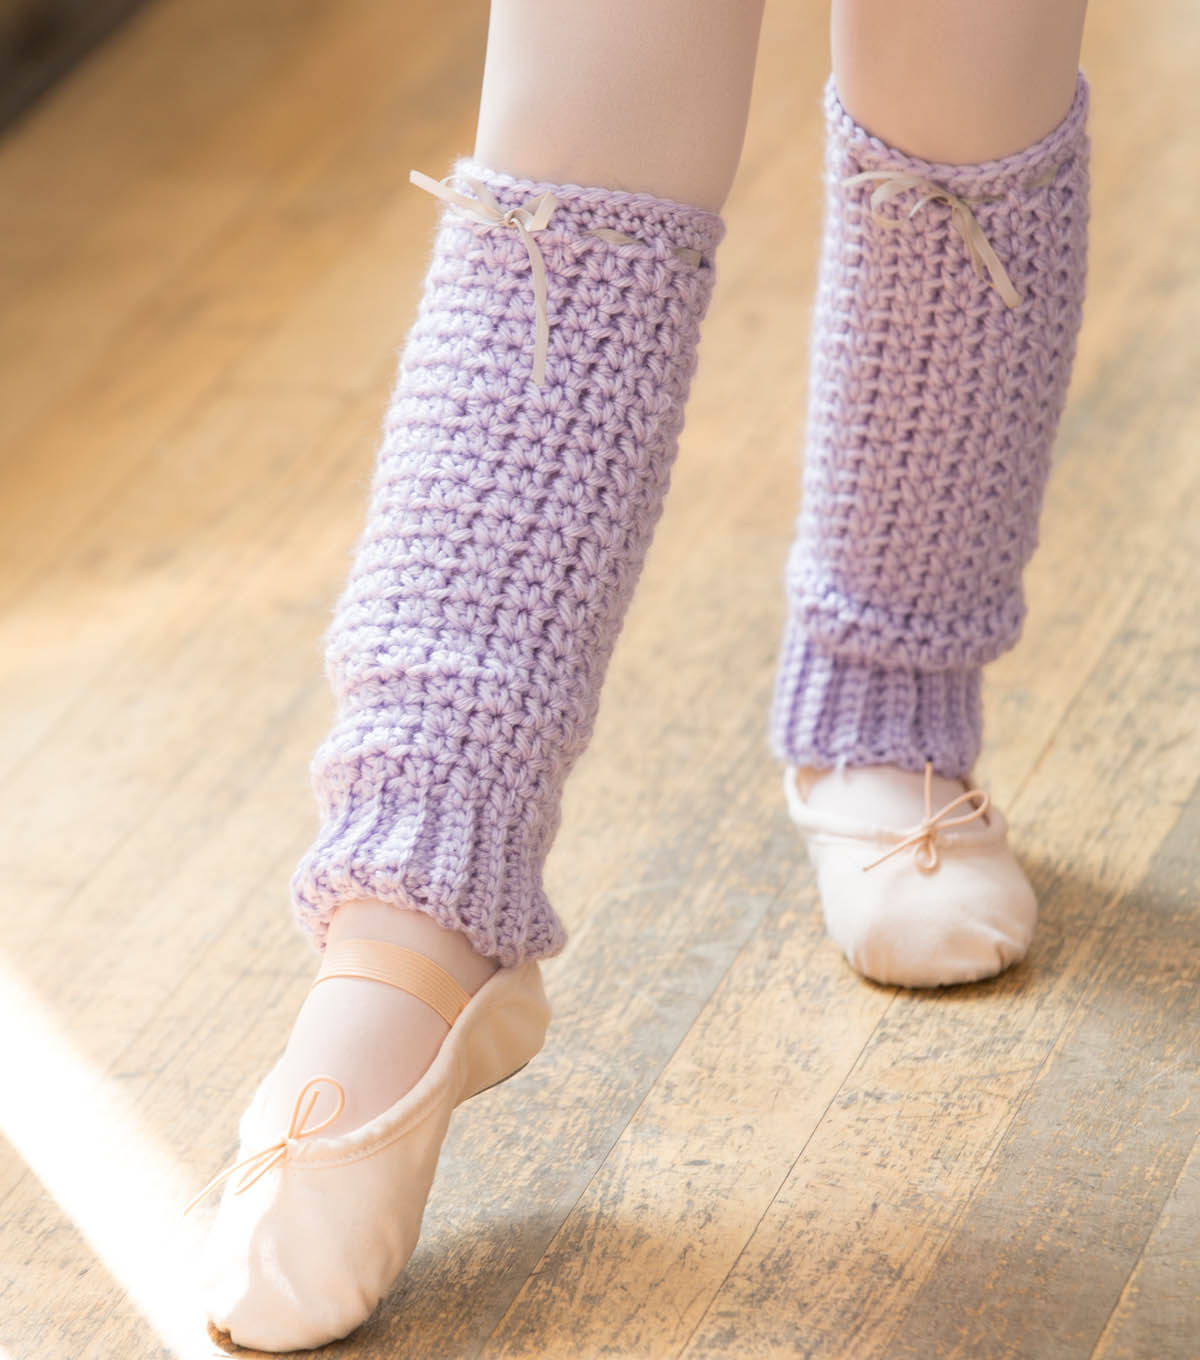 How To Make Joy of Dance Leg Warmers